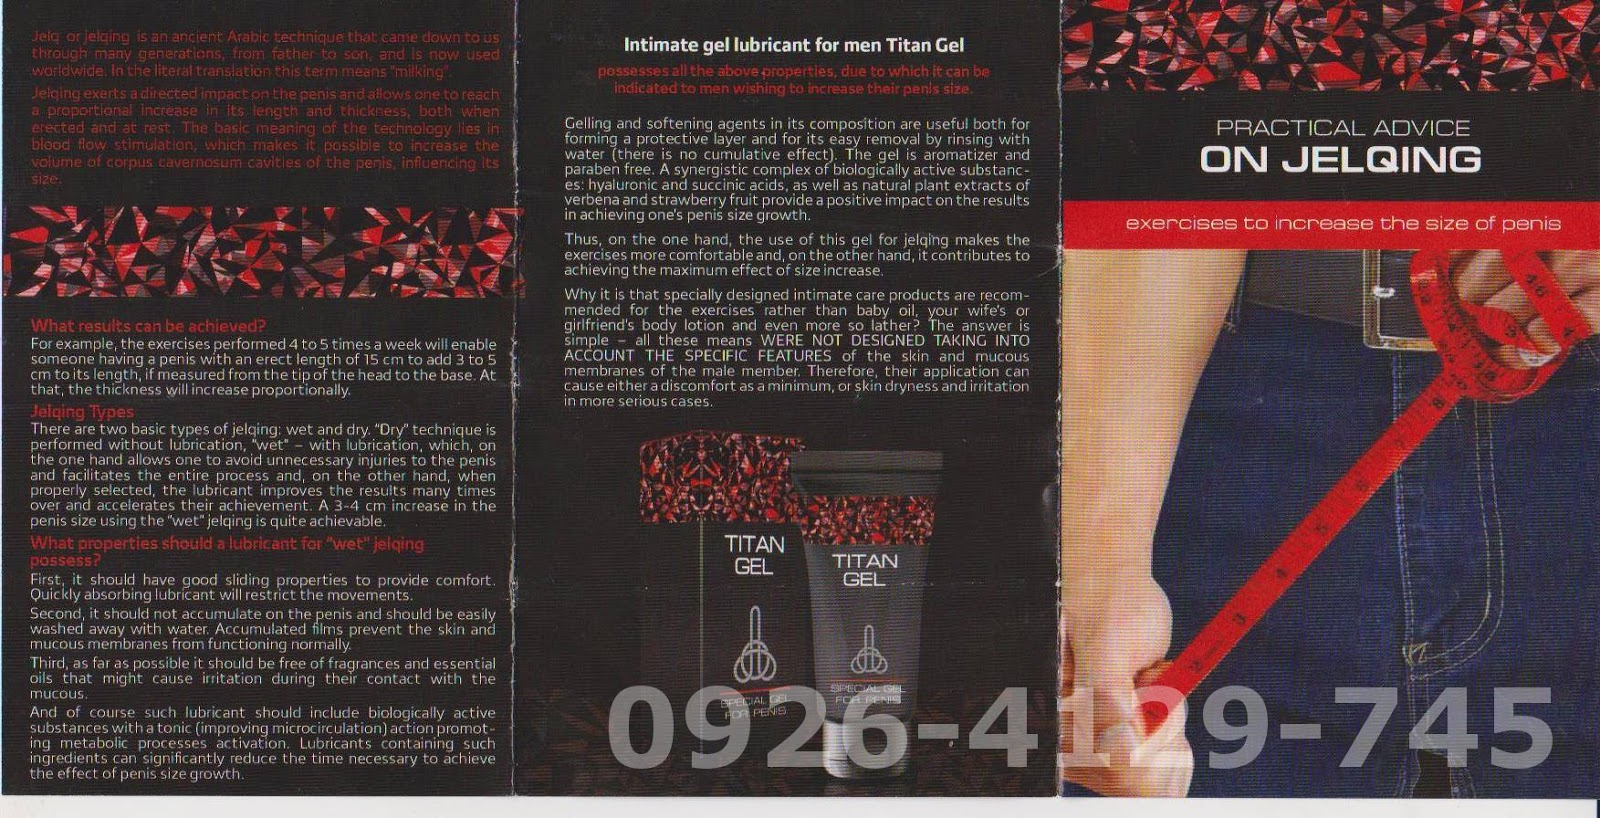 titan gel manual how to use titan gel philippines